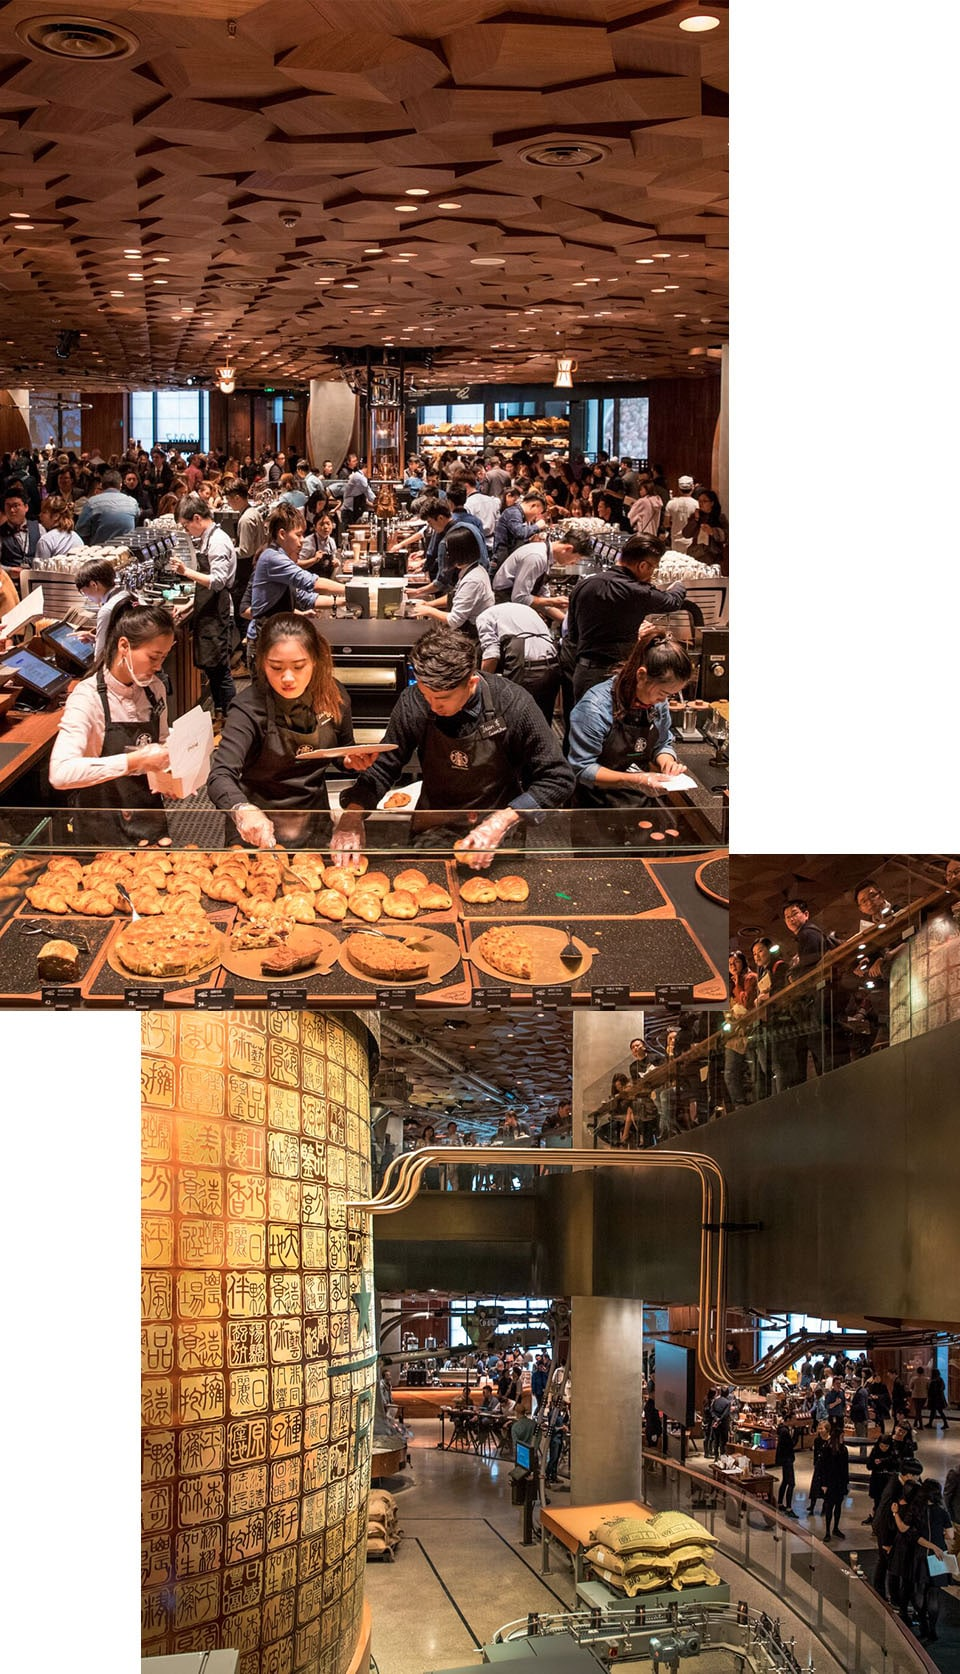 Collage of a lot of people in an interior space making coffee, touching bread, and other activities and large interior space with a lot of people